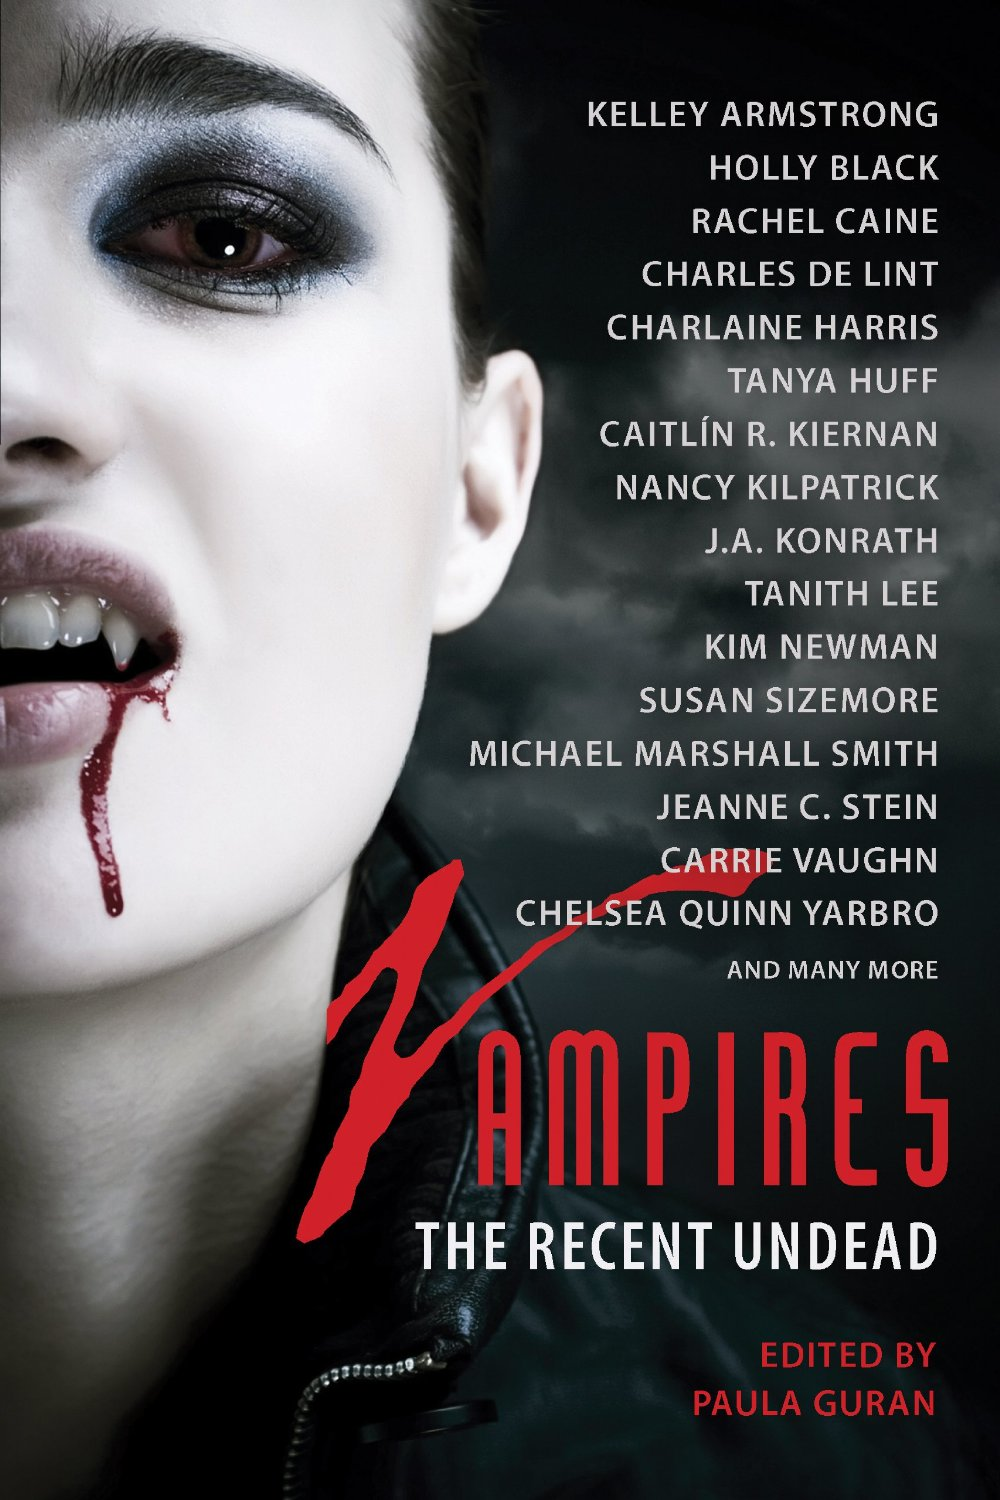 Vampires-The-Recent-Undead